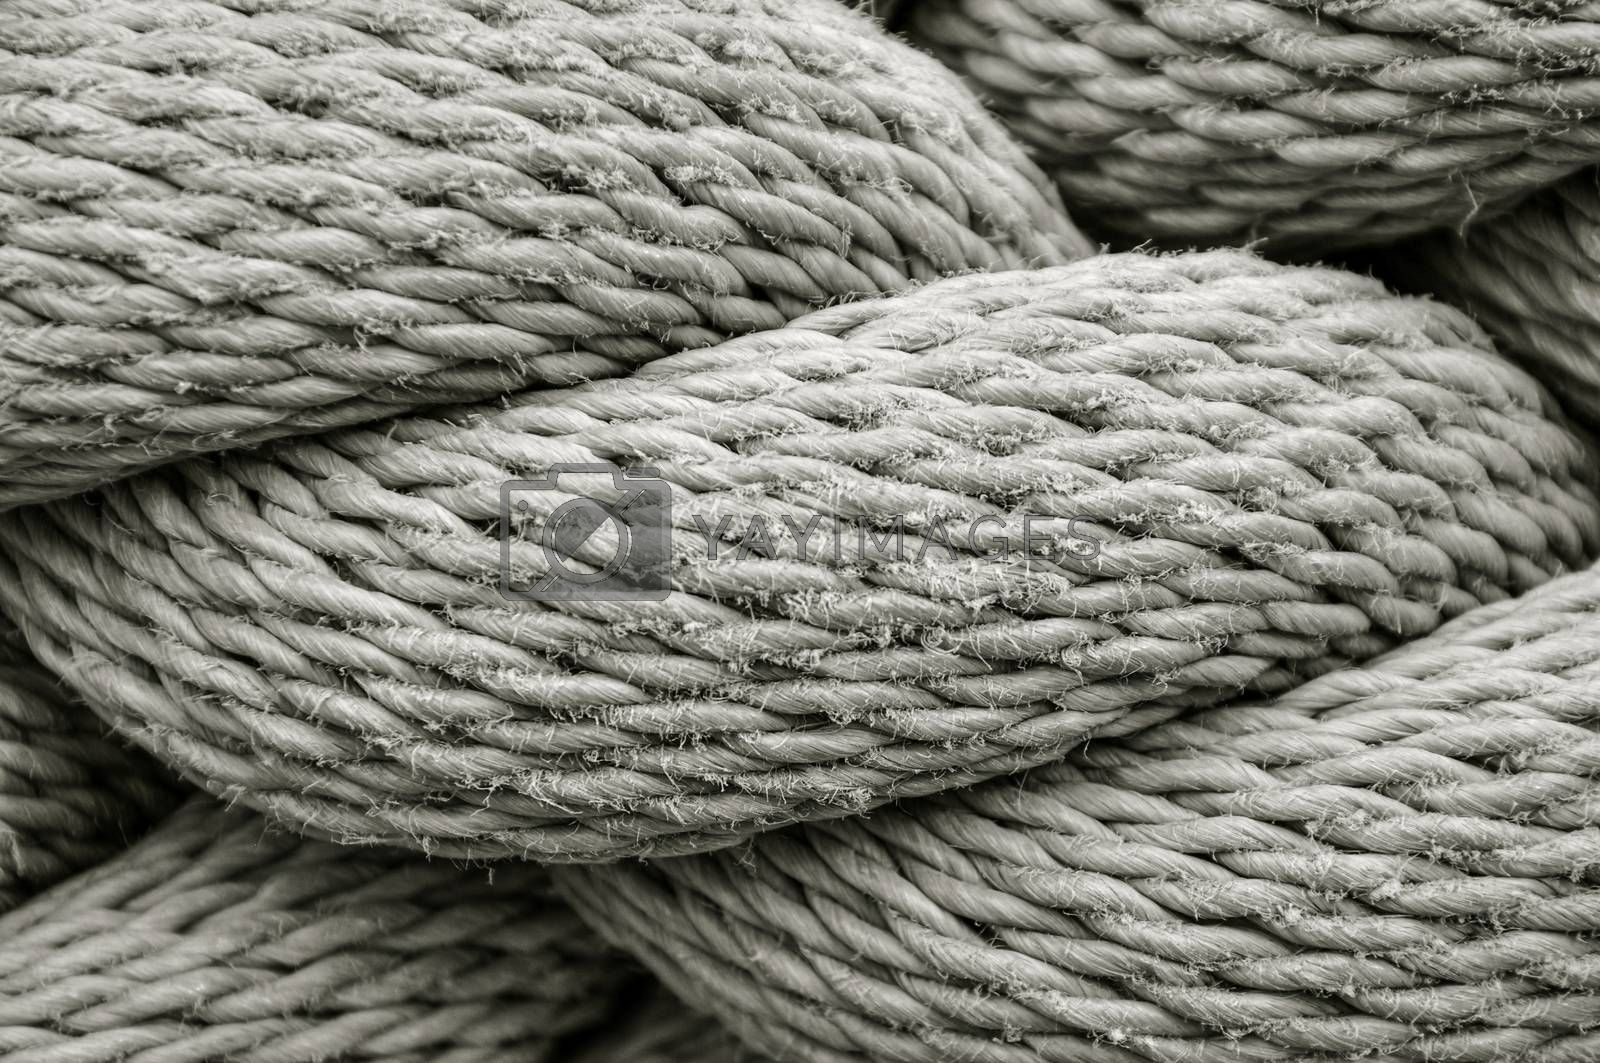 A close up view of a thick industrial rope showing all the threads and fibres